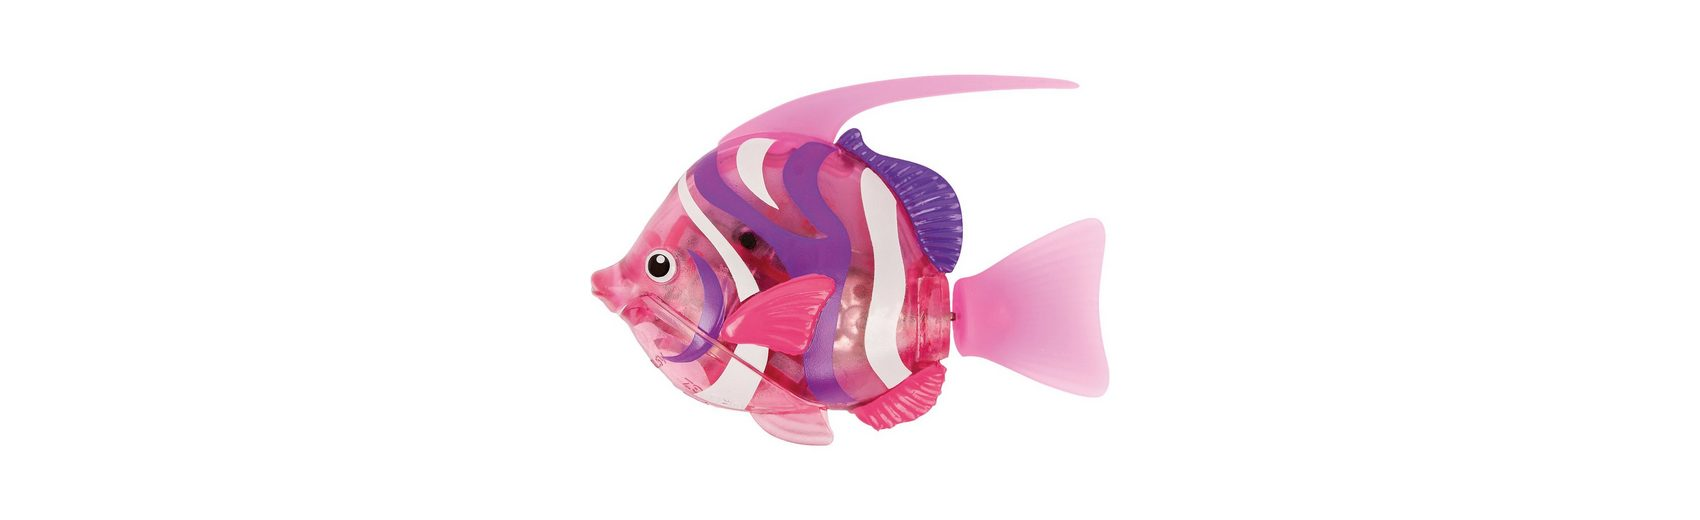 Goliath Robo Fish Tiefsee Wimplefish Pink